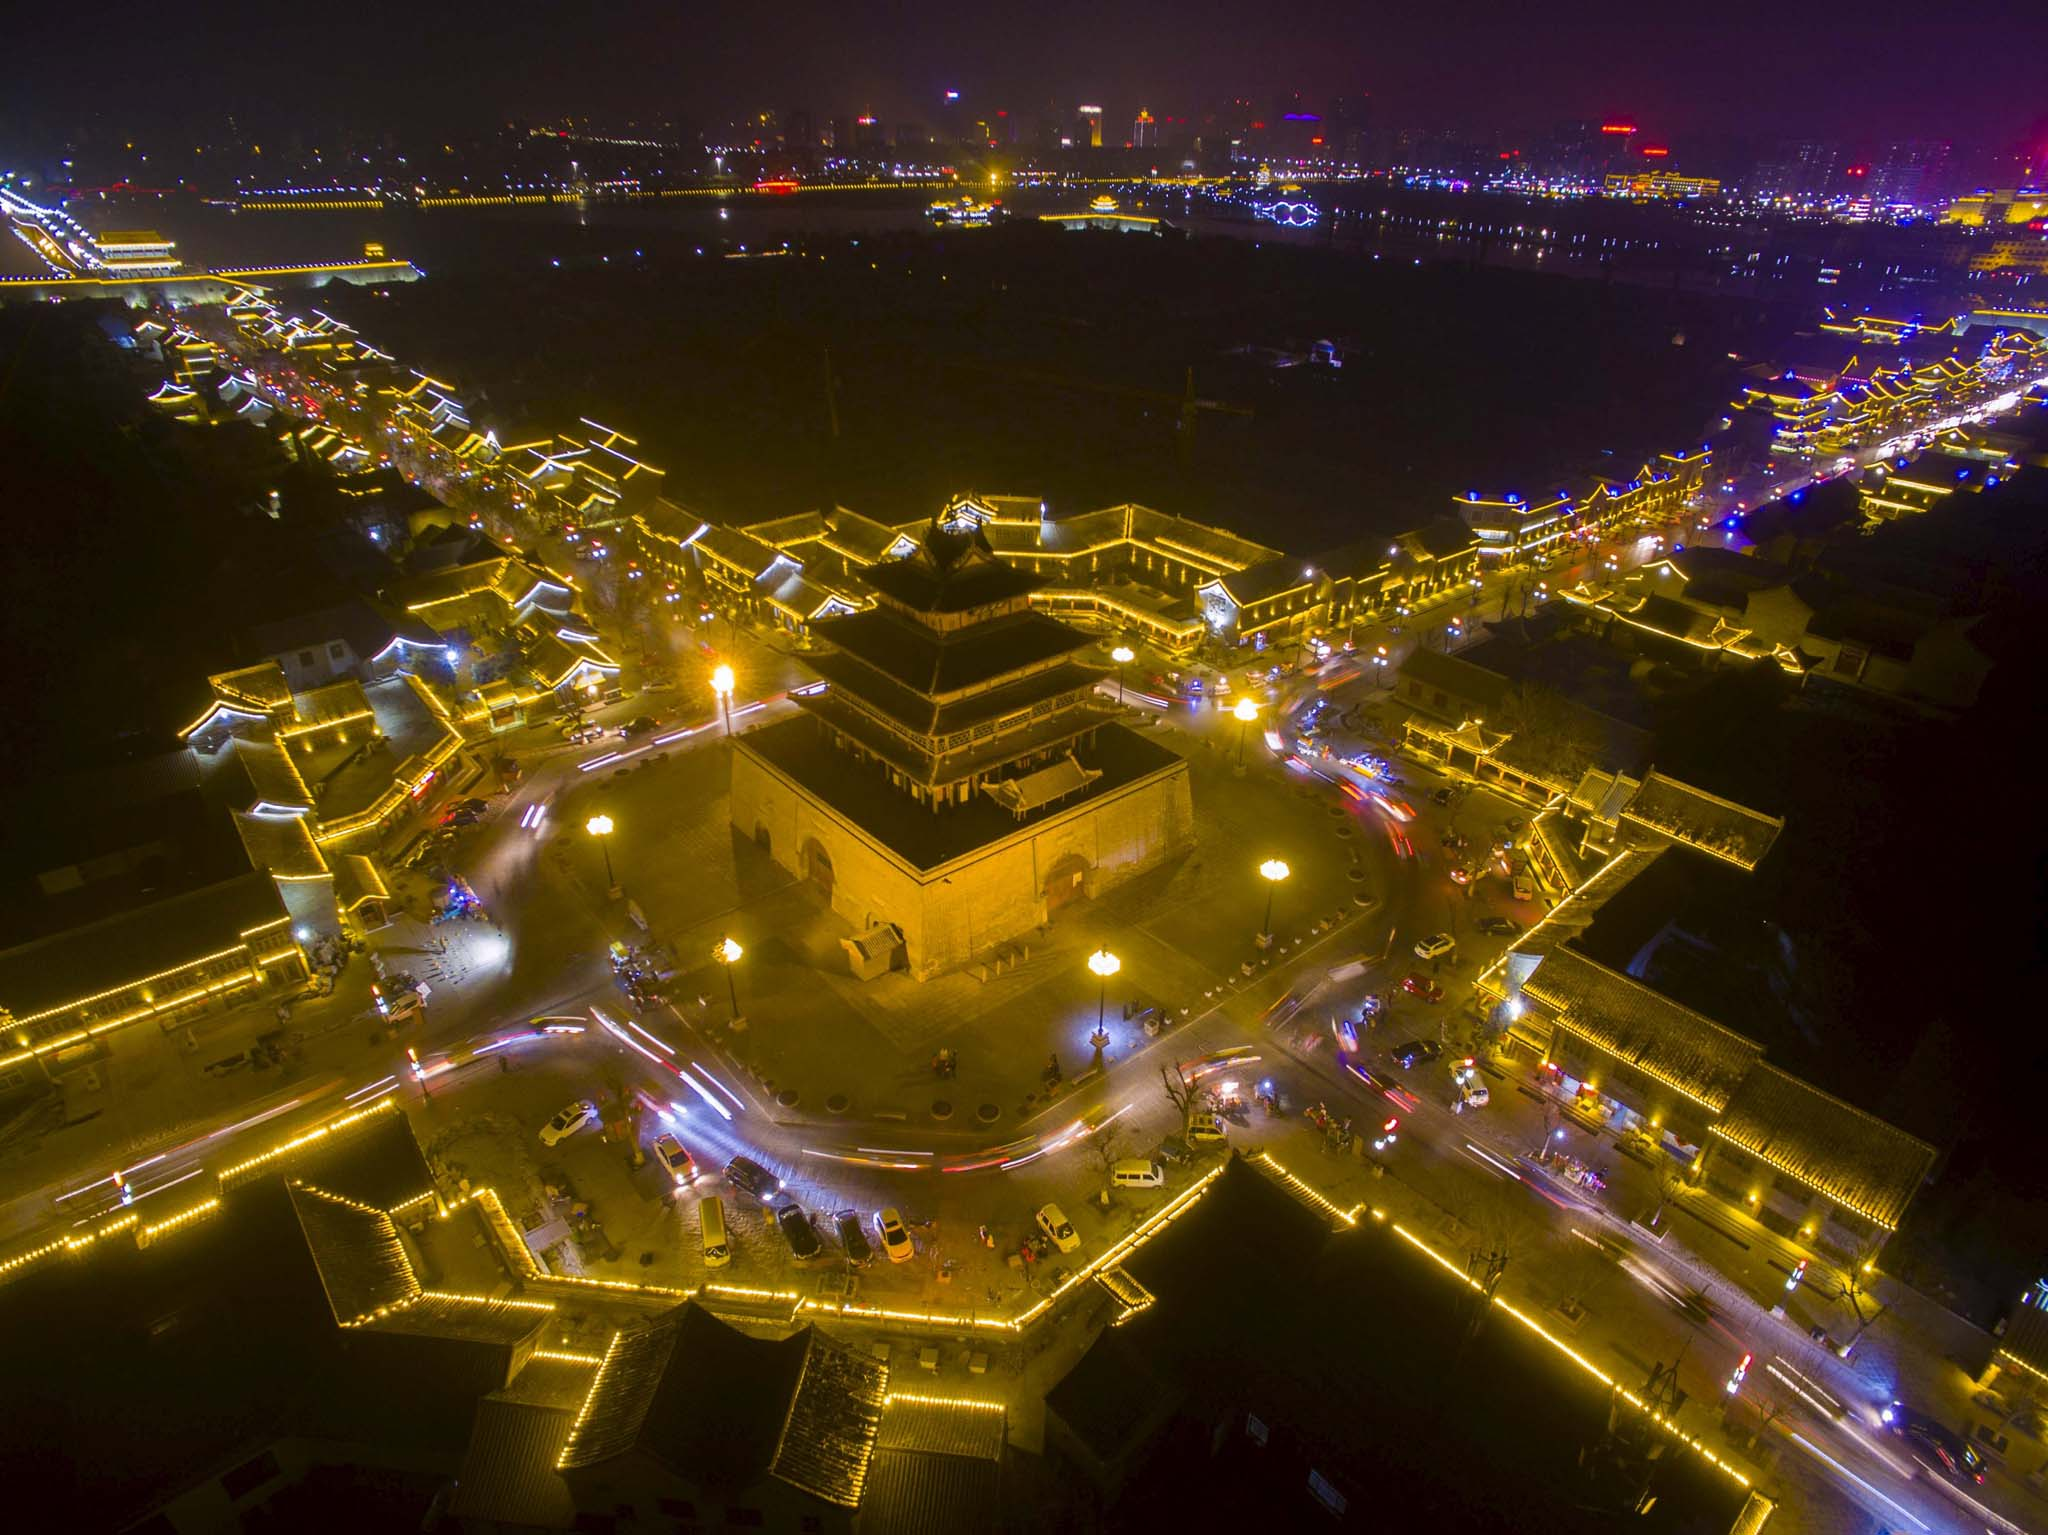 Traditional buildings of a tourist spot are seen lit up at night in Liaocheng, Shandong province